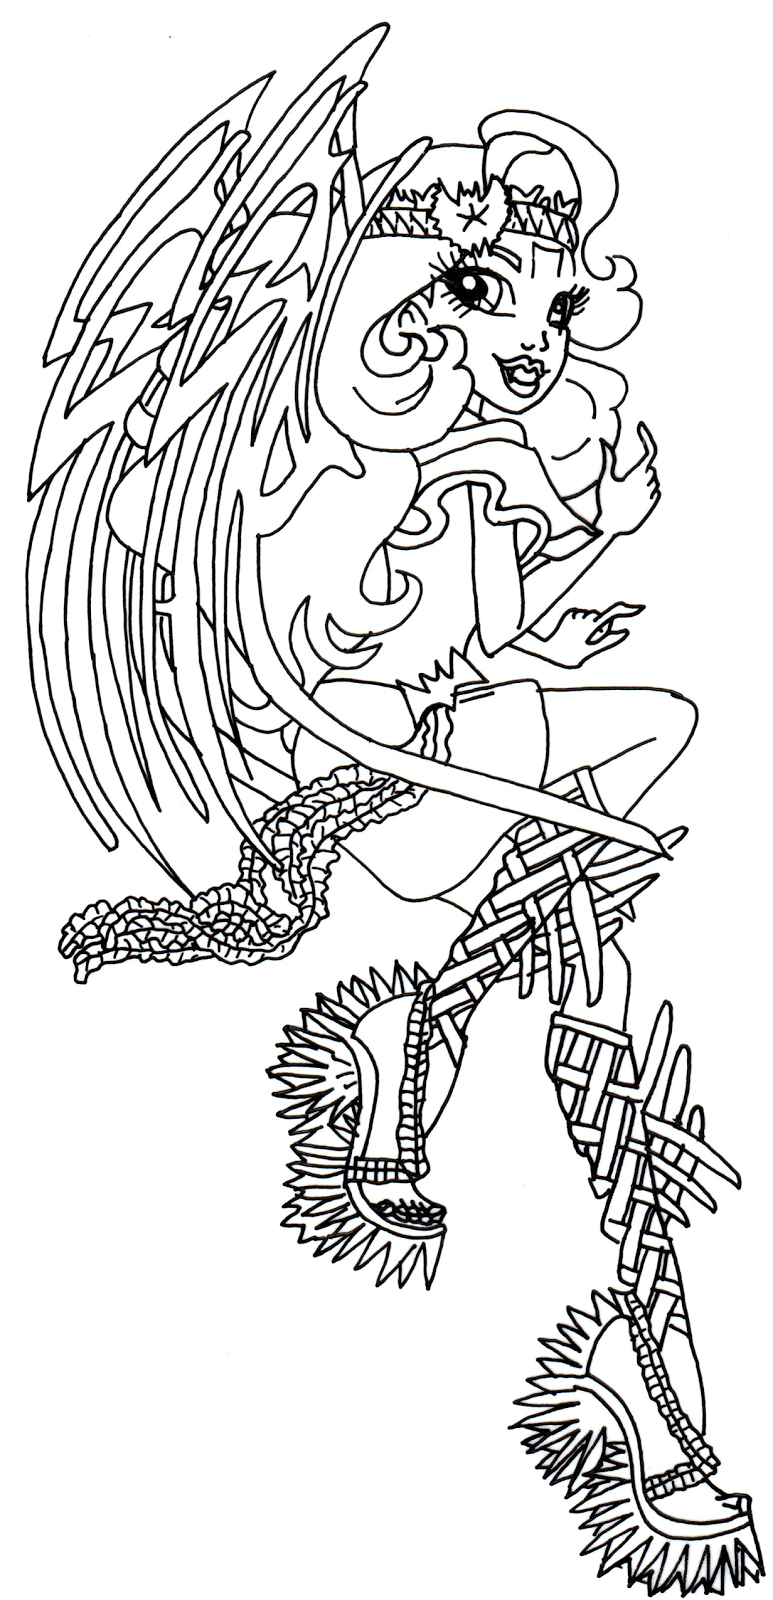 Batsy+Claro+Monster+High+Coloring+Page.png (773×1600) | Monster High ...